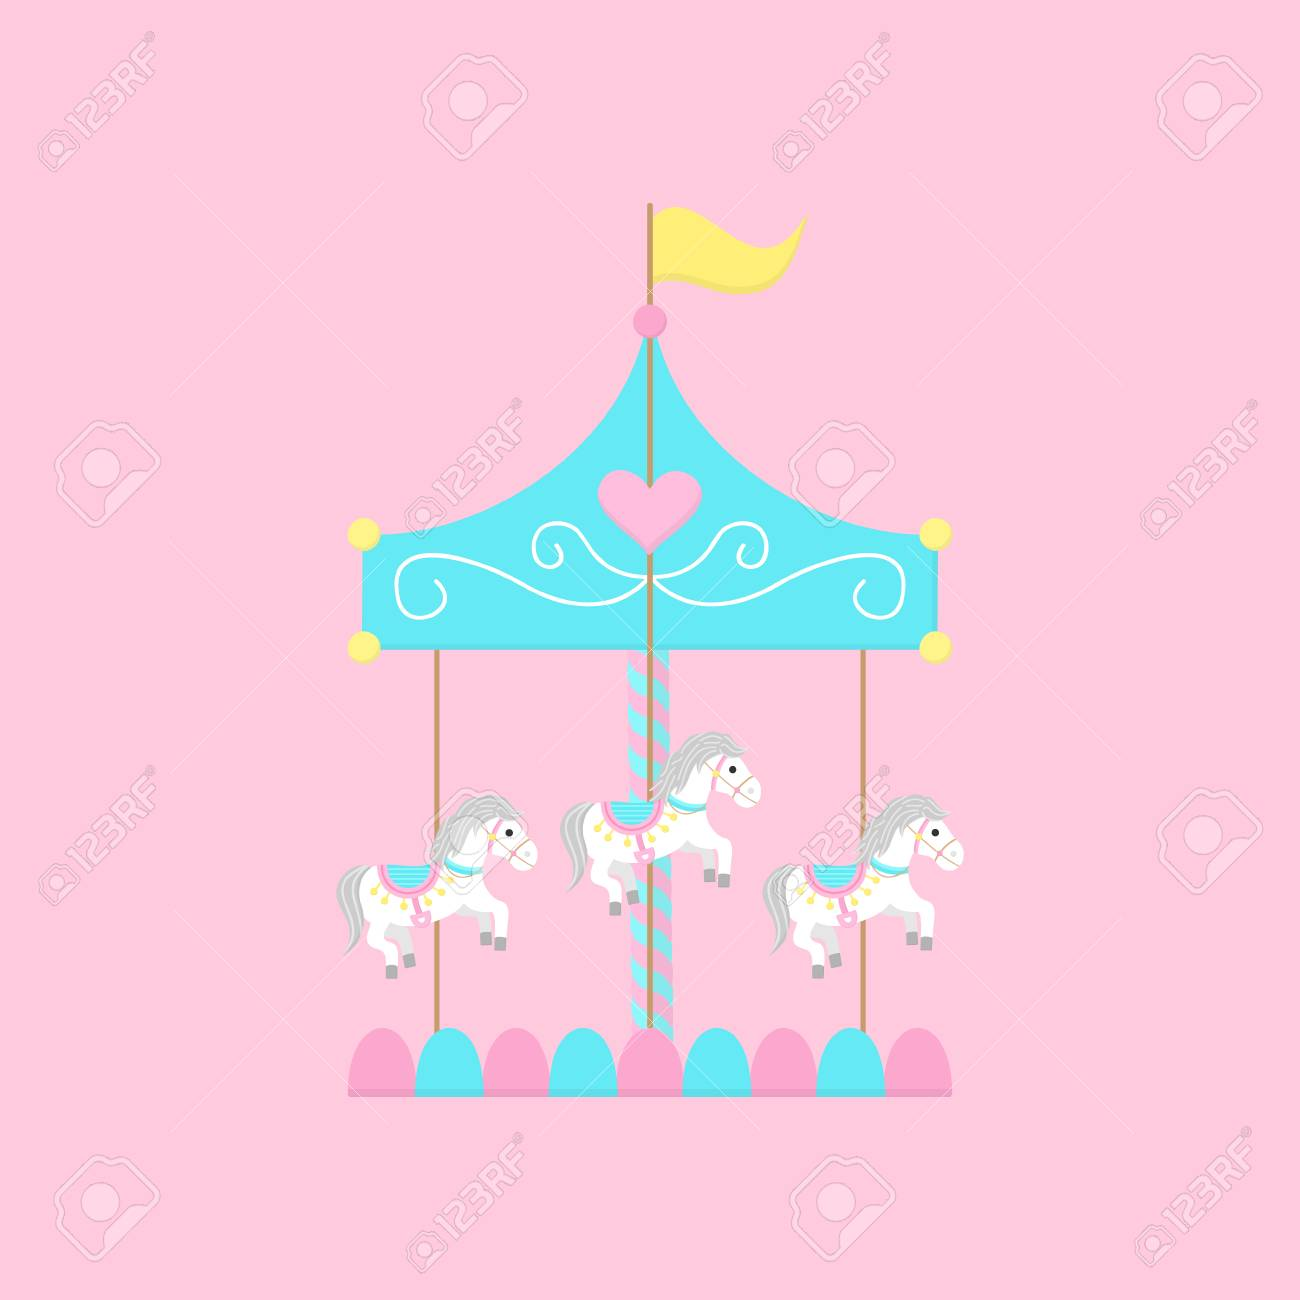 Merry Go Round Carousel With White Horses Vector Graphic Illustration Royalty Free Cliparts Vectors And Stock Illustration Image 122876330